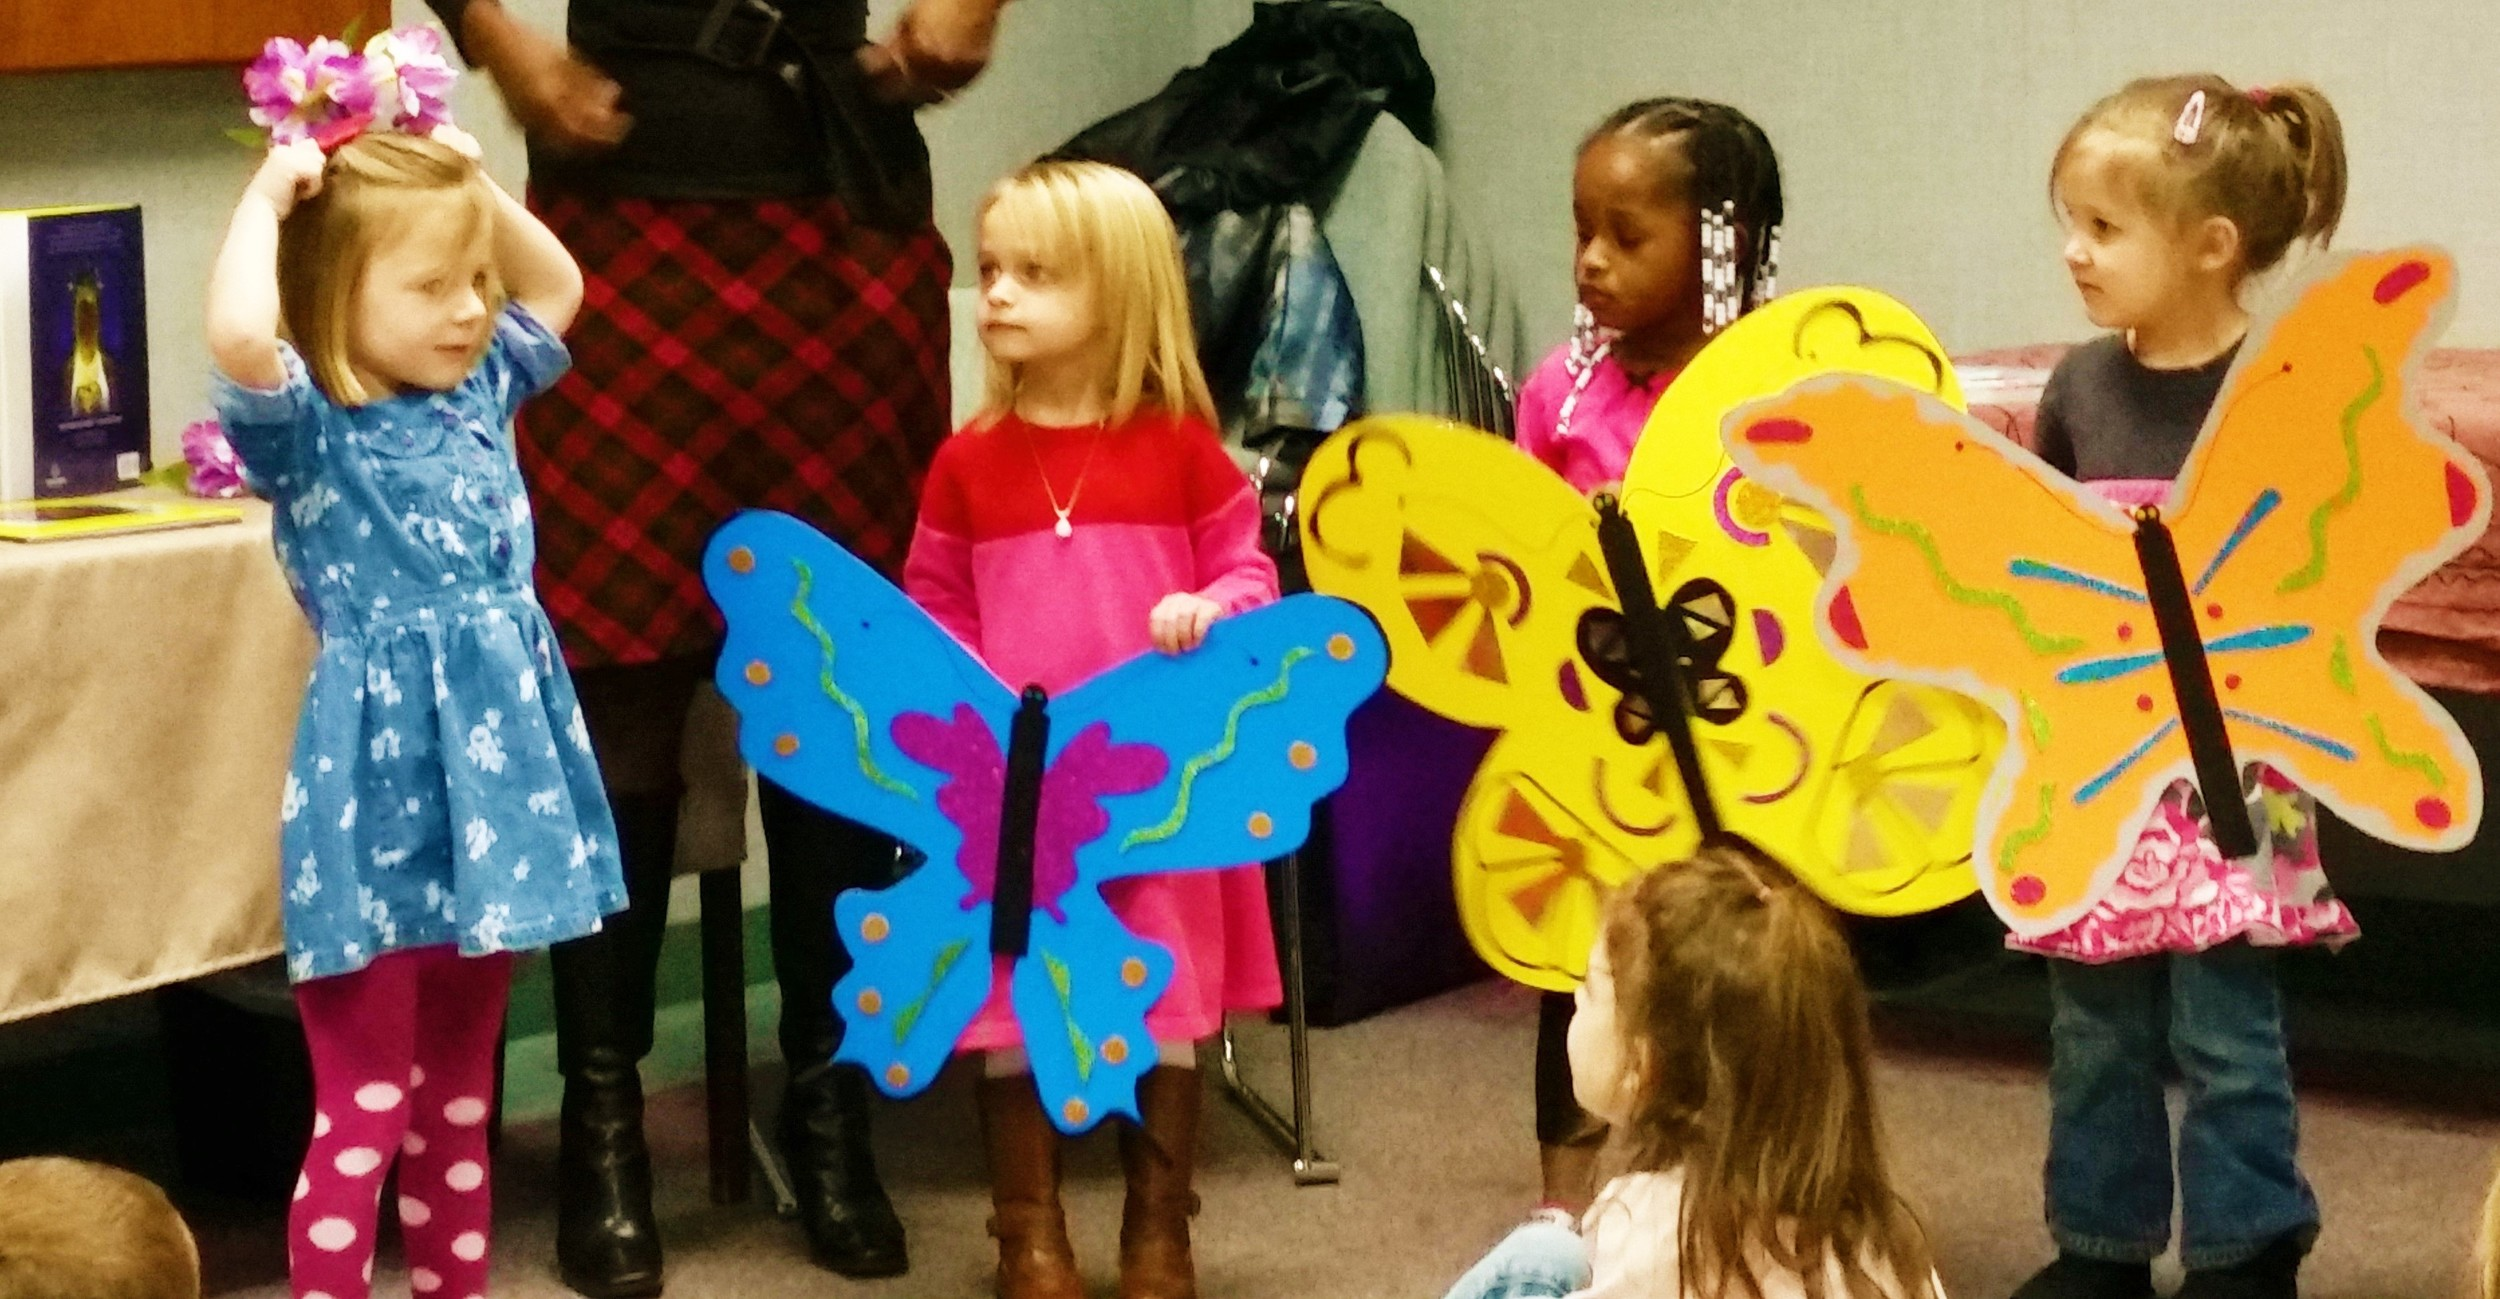 The butterflies agree - Perfect!